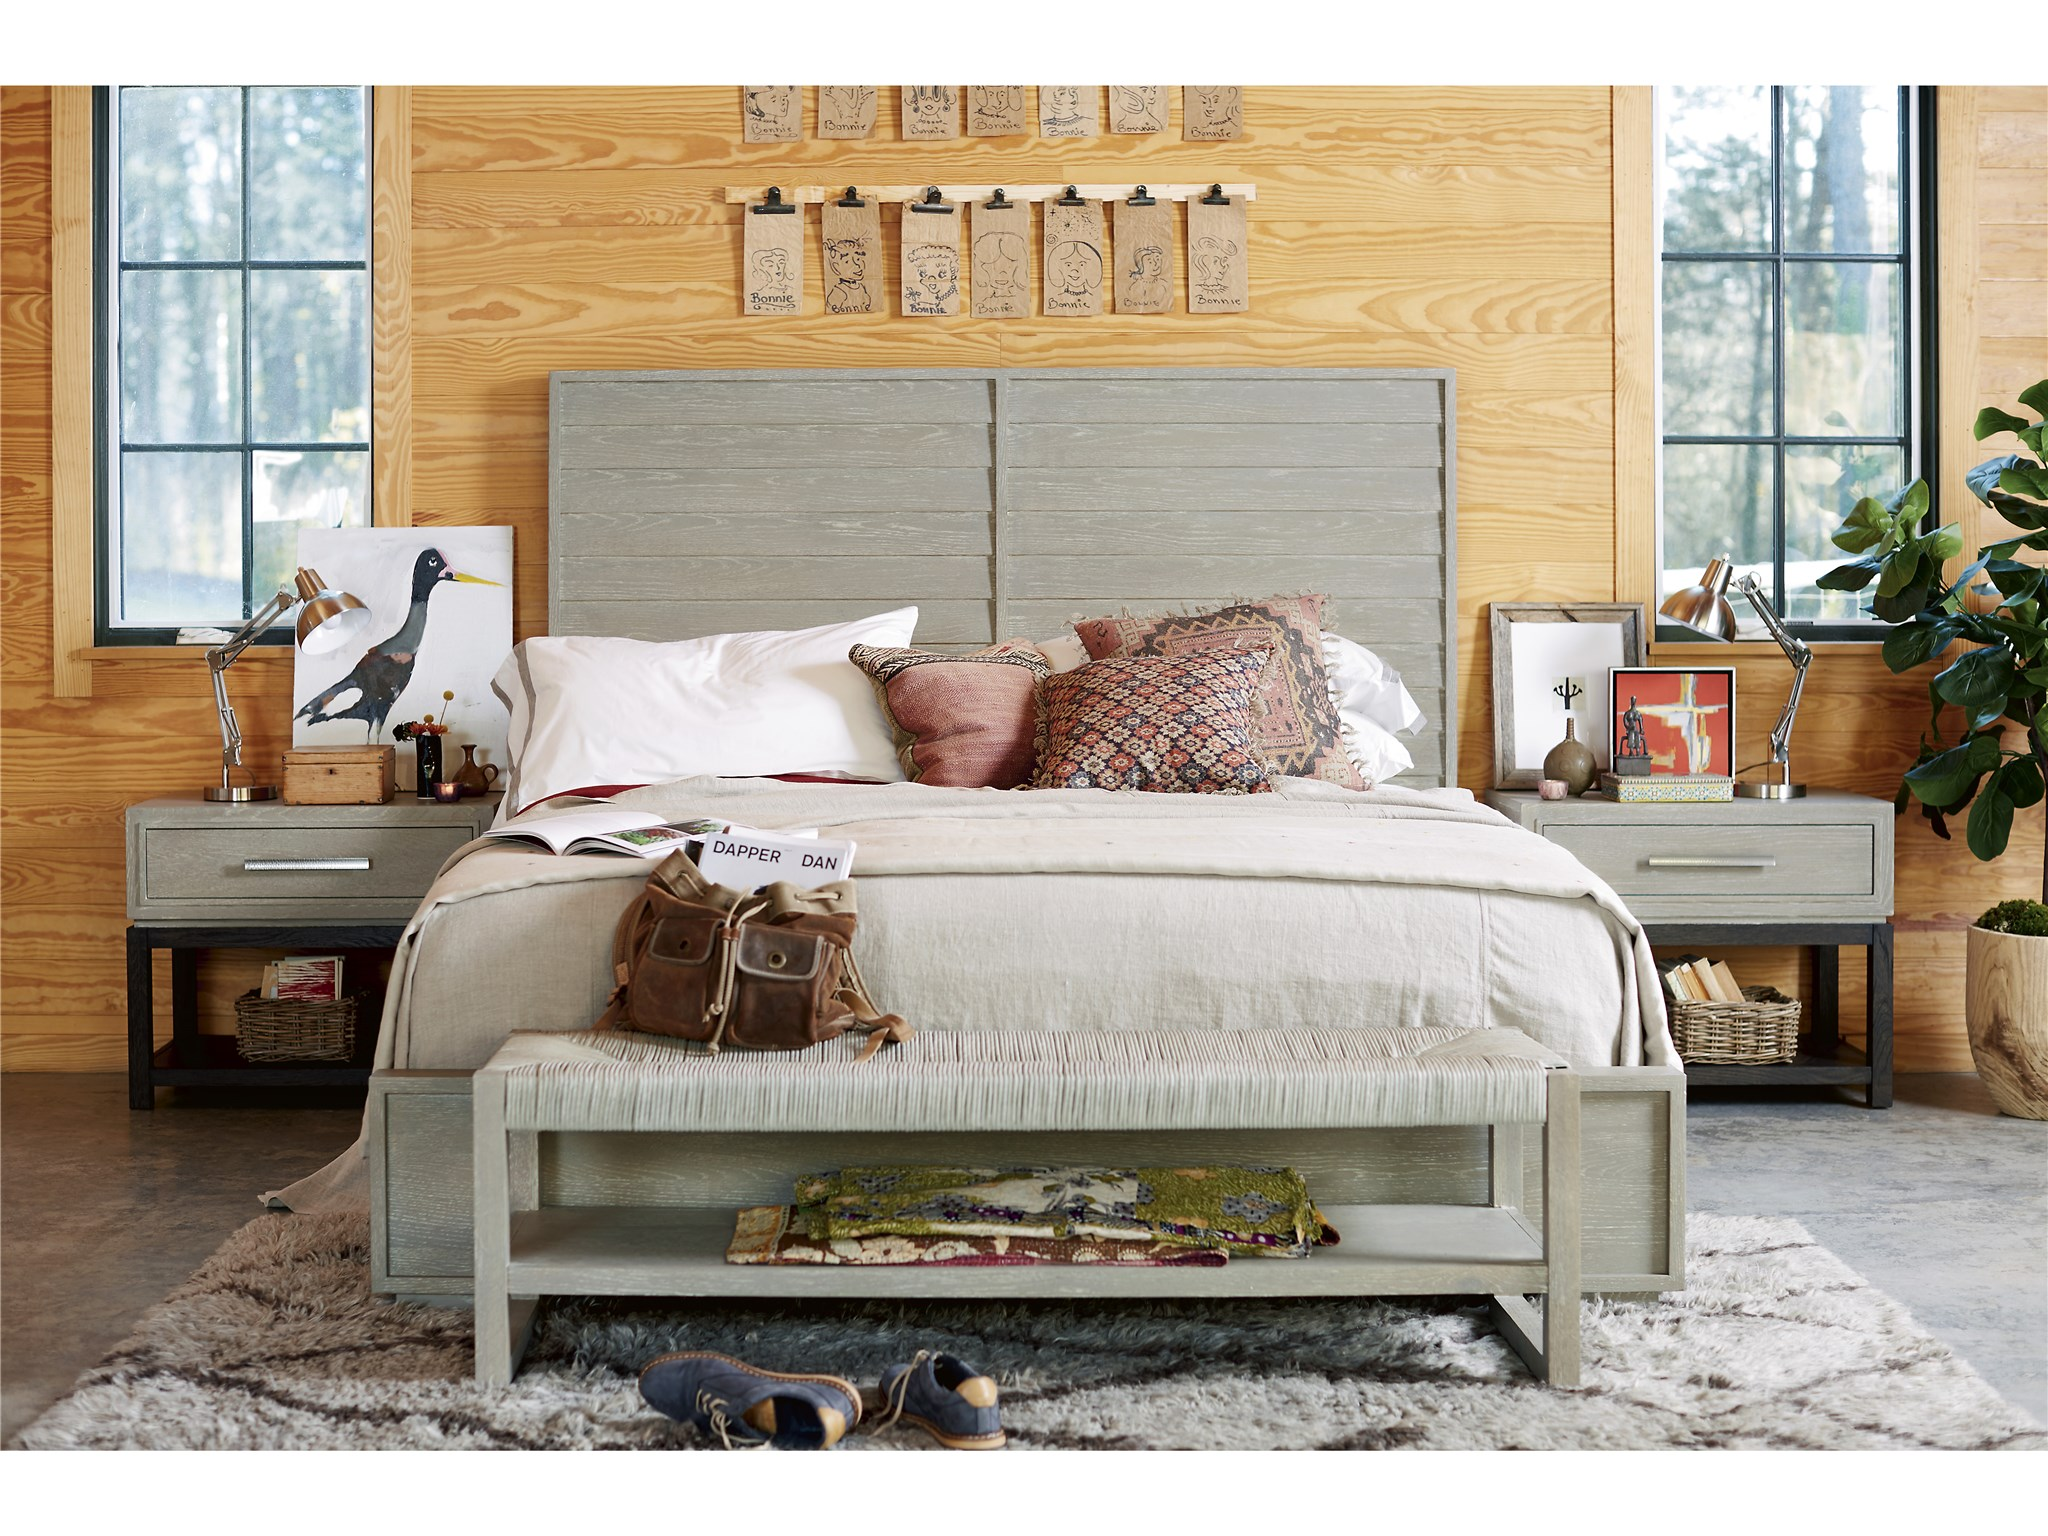 Bench By Bed: Zephyr Bed End Bench